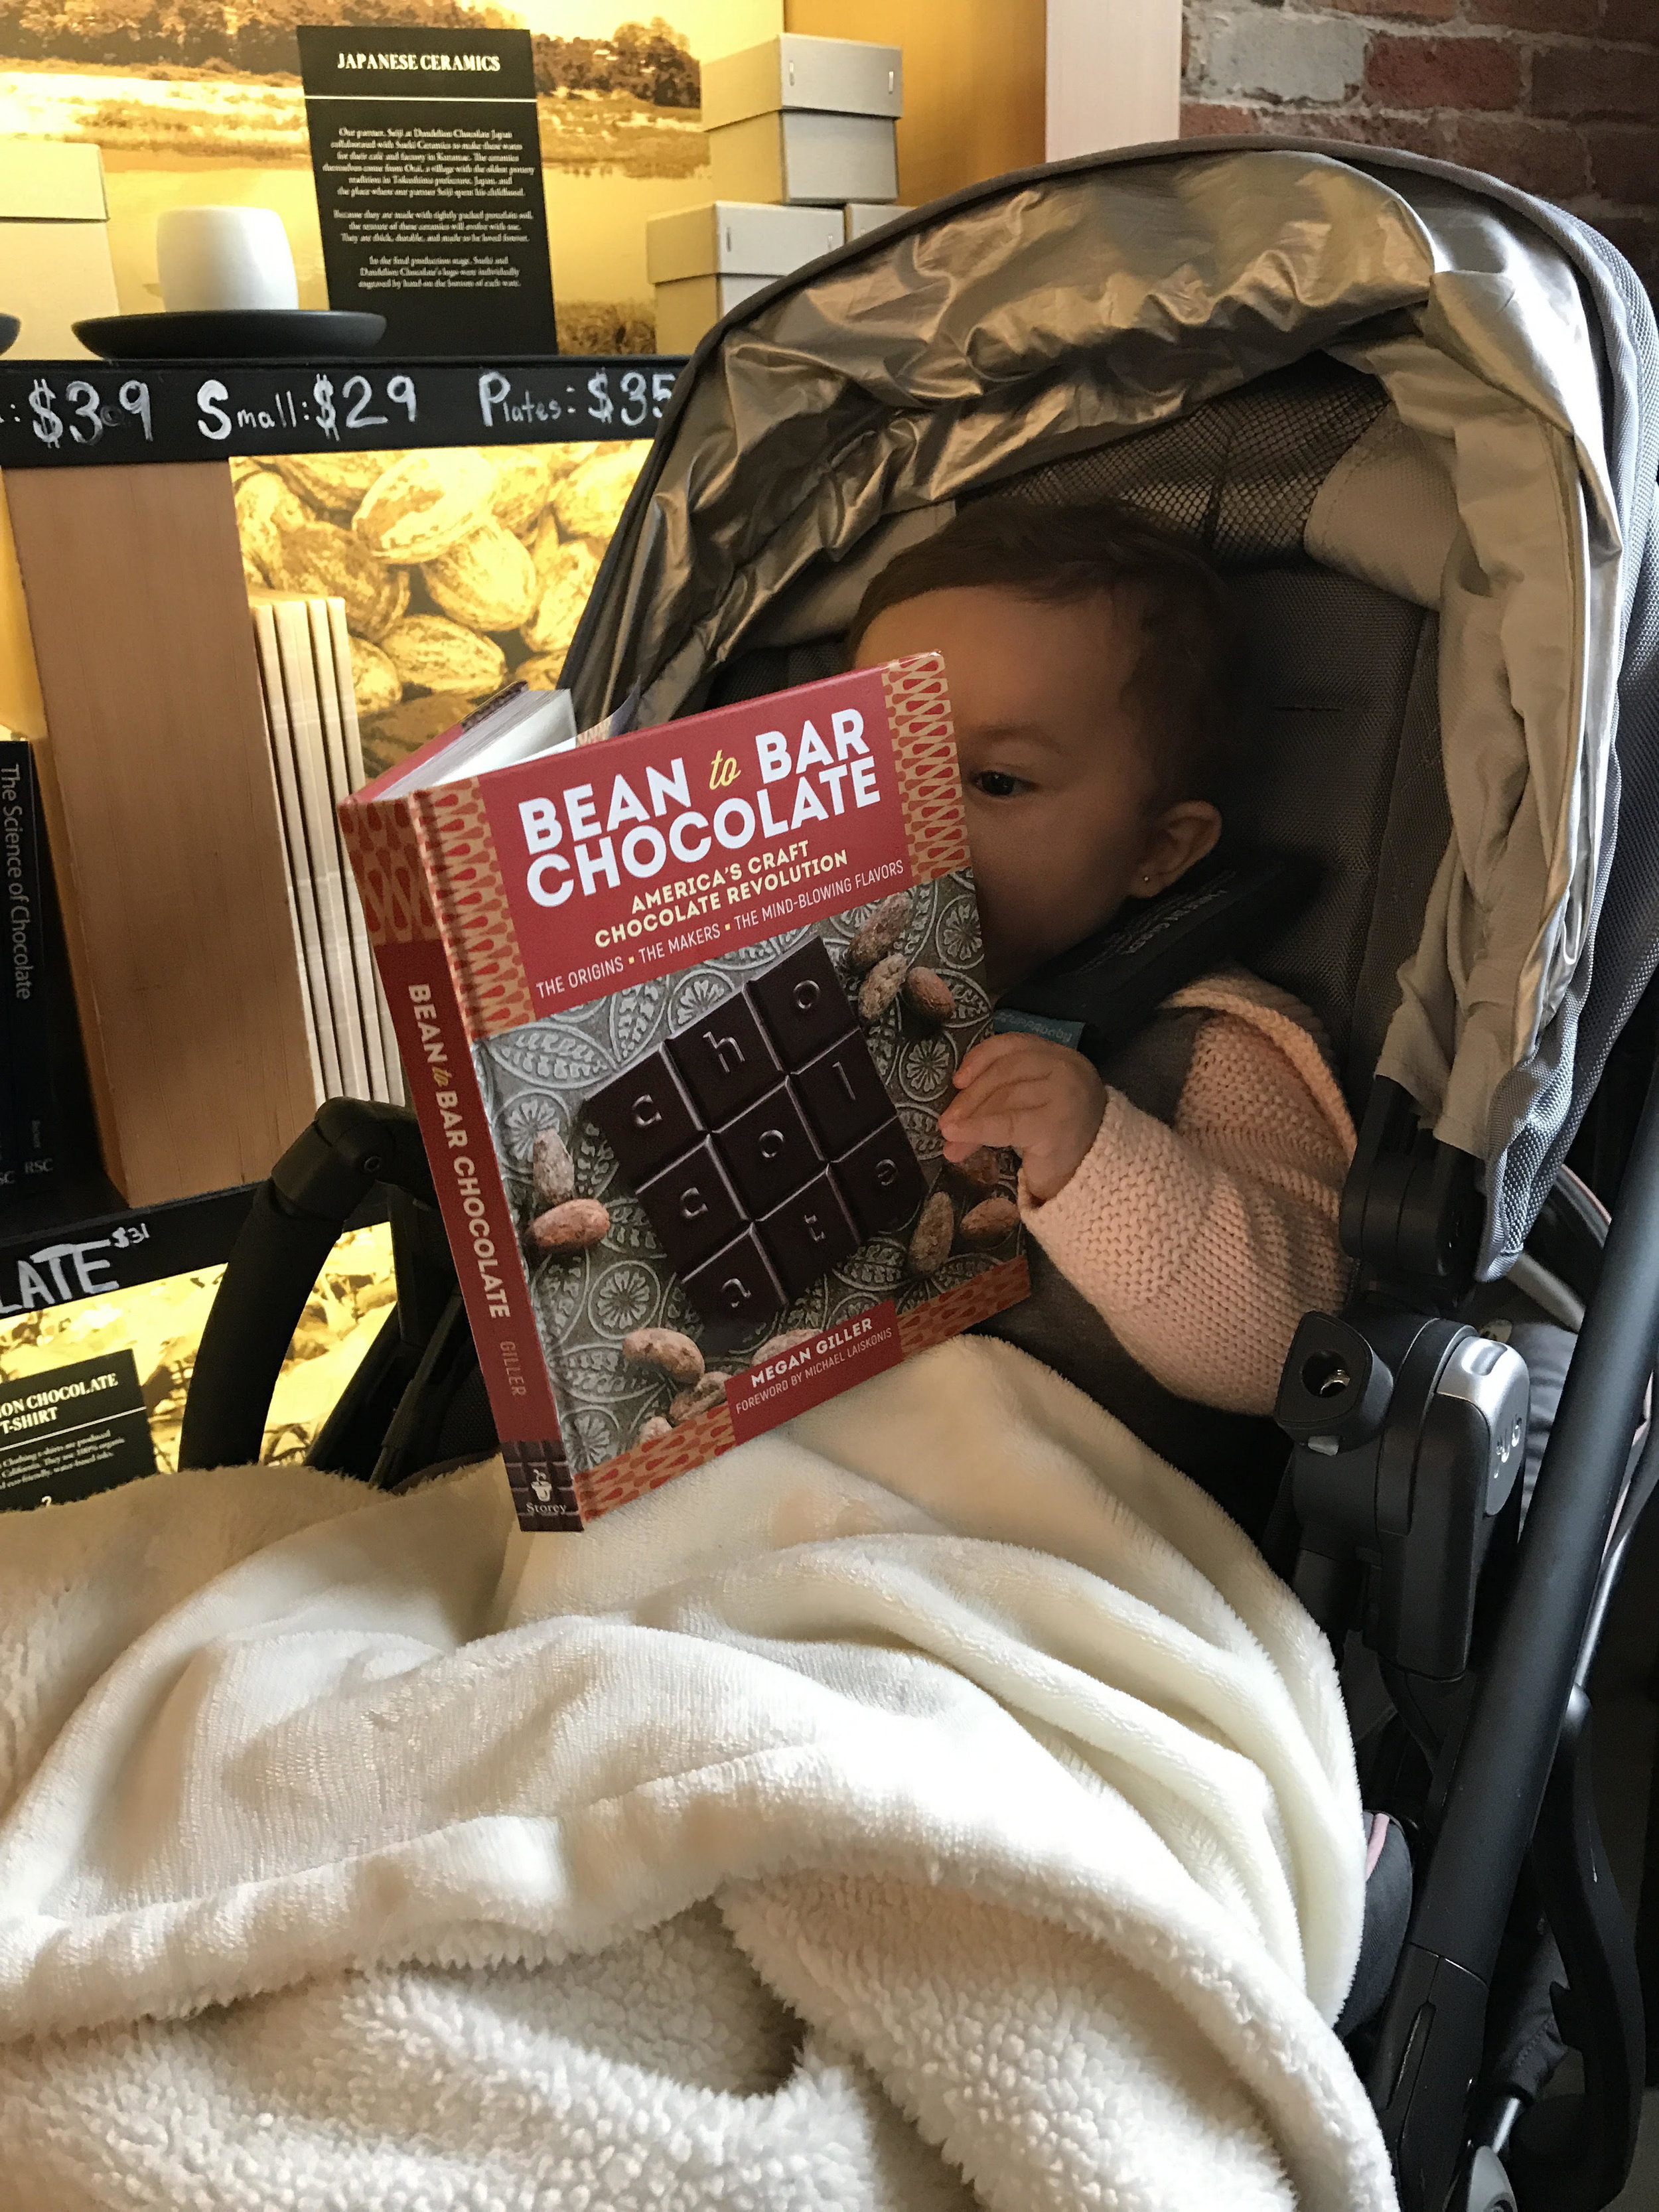 People keep sending me photos of their babies reading my book, and I love it! This is from Arcelia Gallardo, the founder of Mission Chocolate. She says she's been carrying my book around in her diaper bag for easy access.